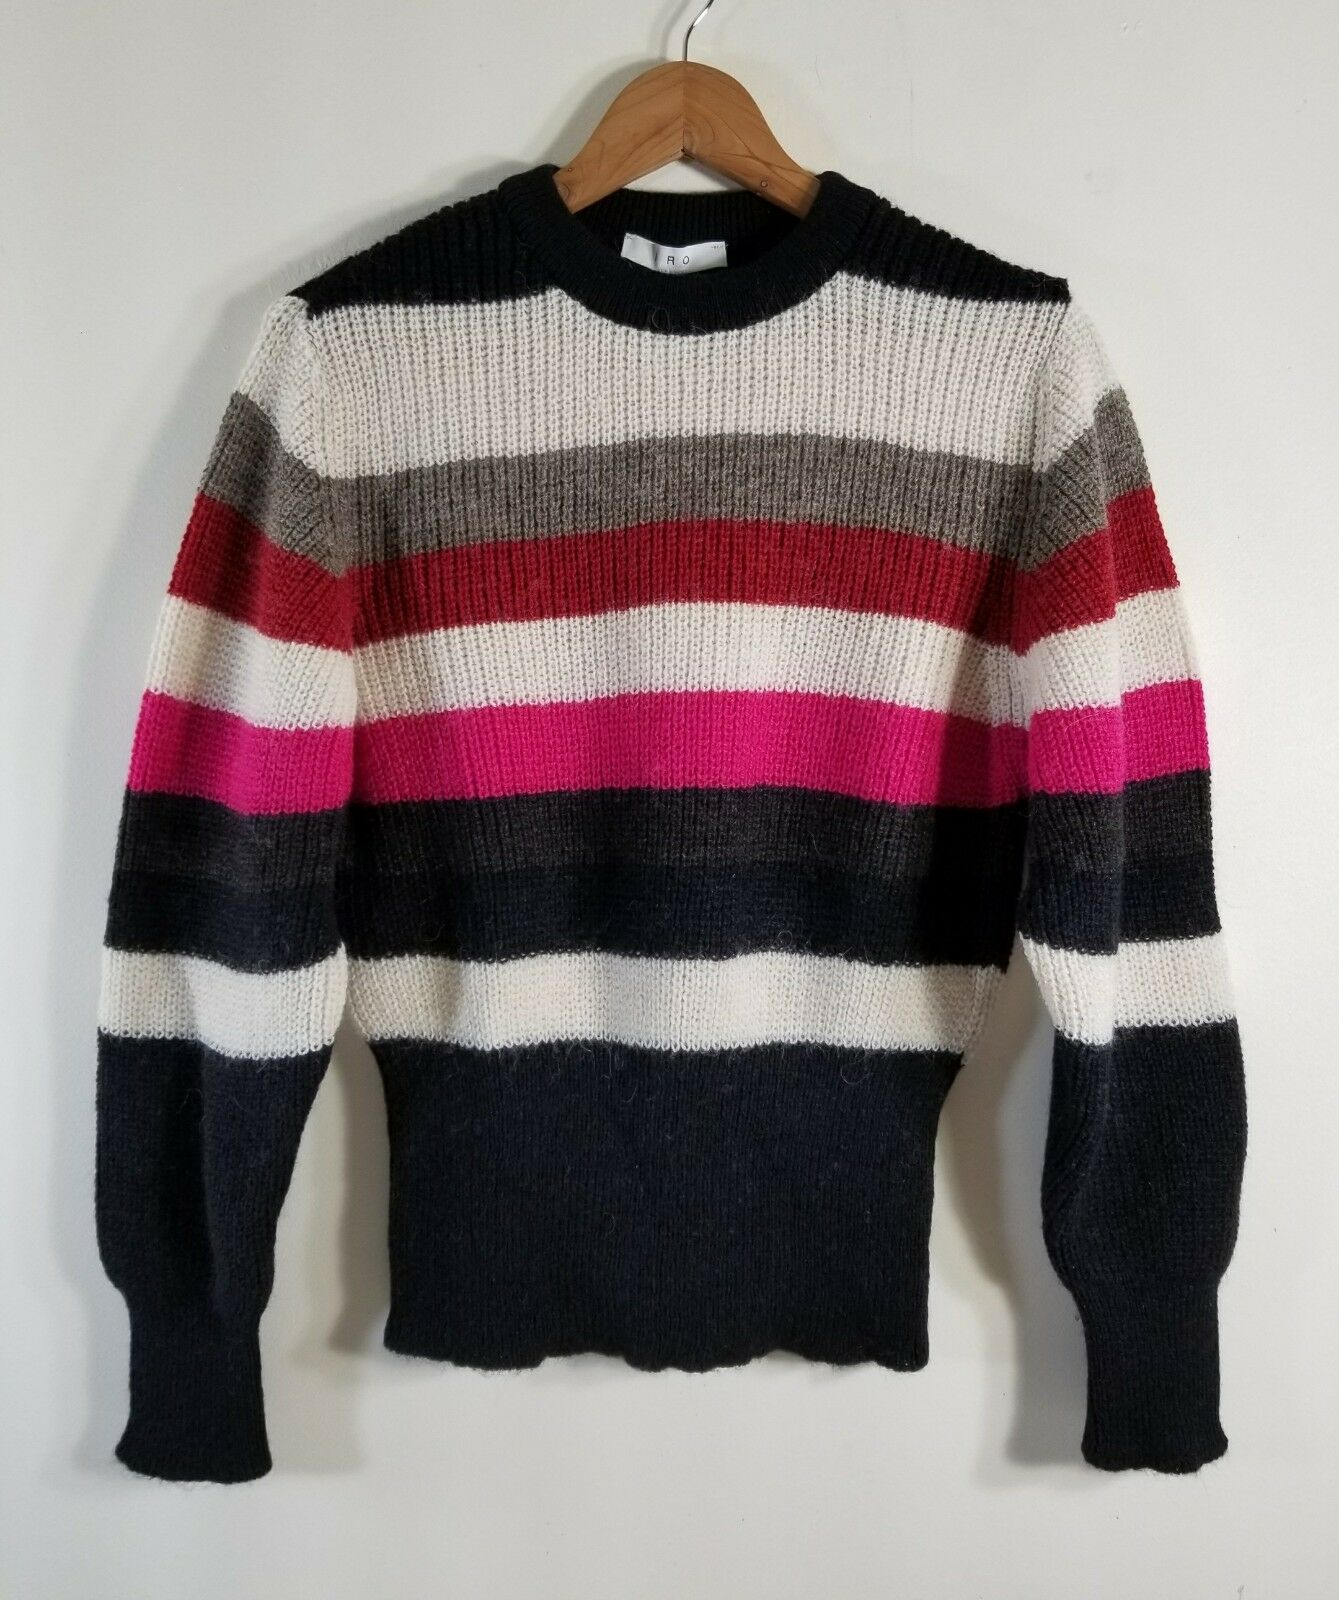 NWT Iro Badis Striped Ribbed Knit Sweater Multi Size M